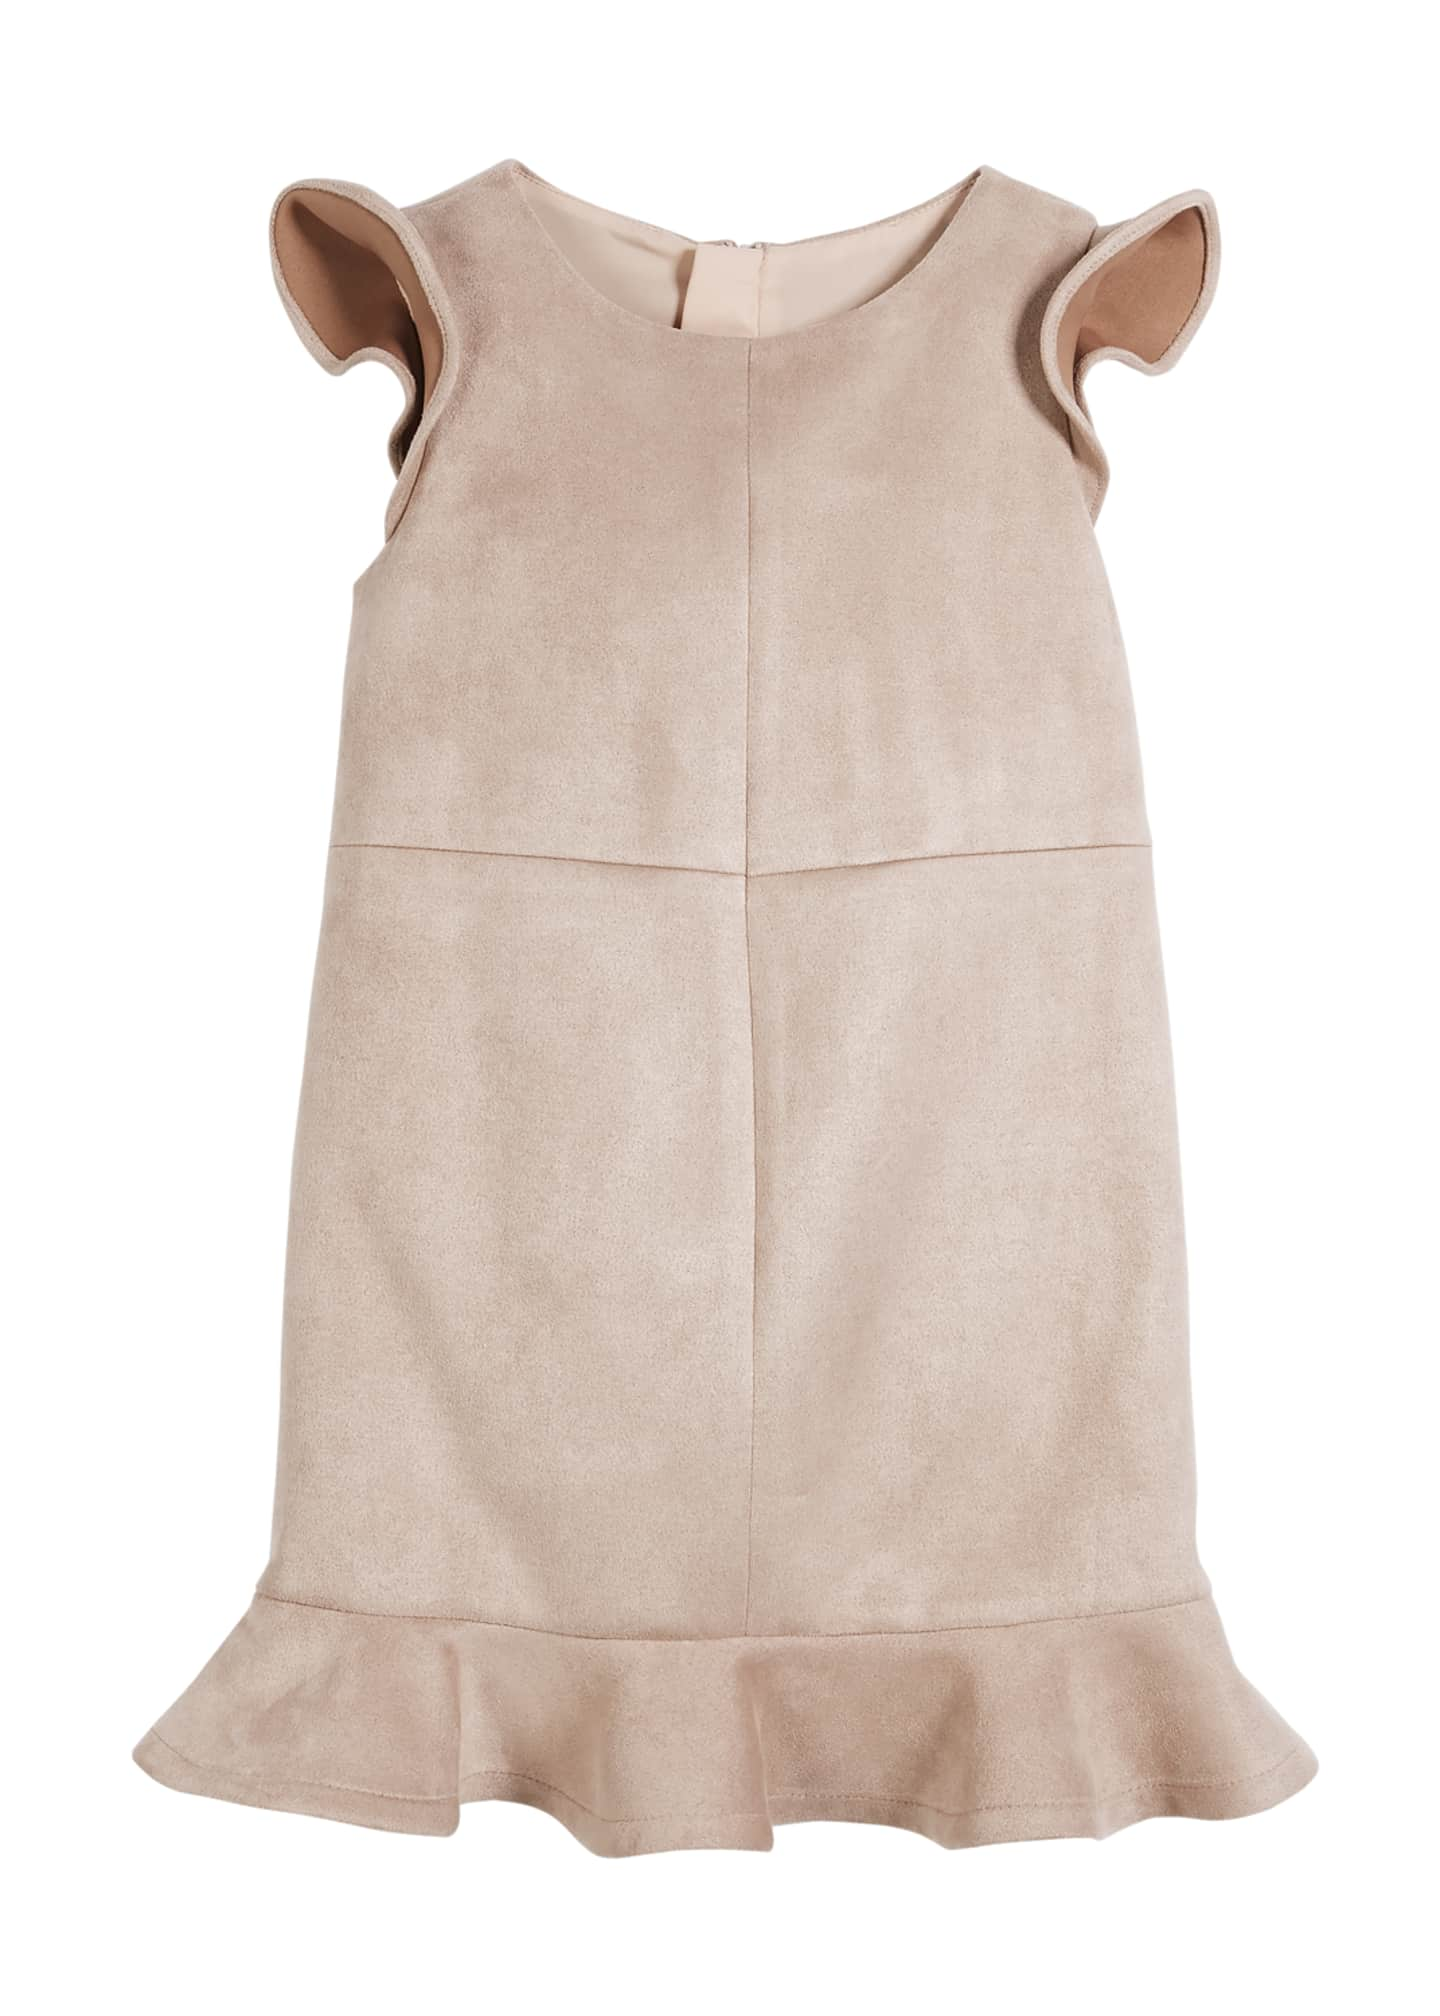 Milly Minis Paneled Stretch Sueded Dress, Size 4-7